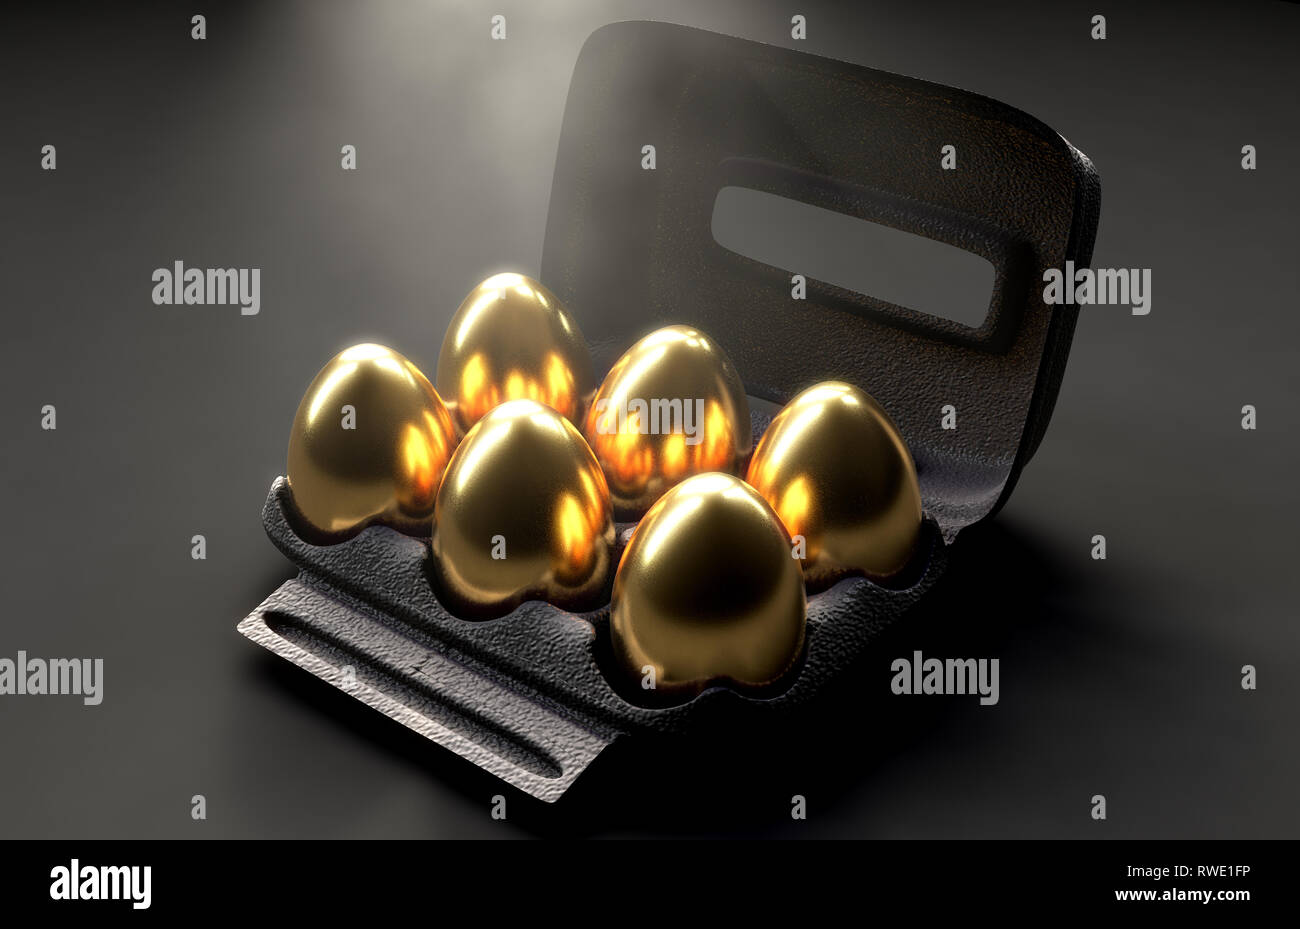 A collection of six golden eggs in a regular cardboard egg